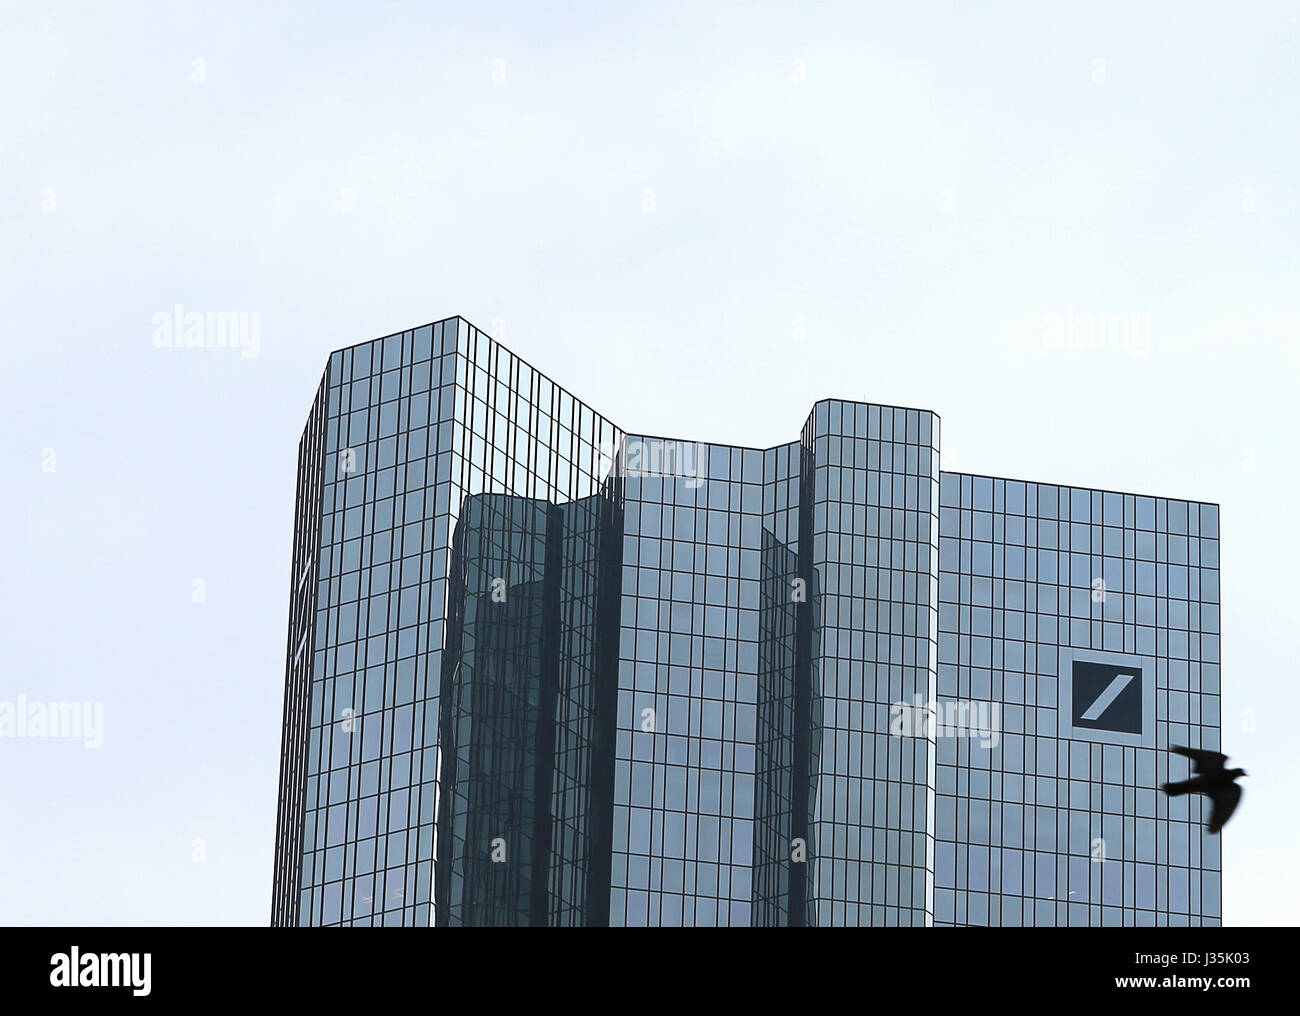 Frankfurt. 3rd May, 2017. Photo taken on May 3, 2017 in Frankfurt, Germany shows the tower of the Deutsche Bank. - Stock Image